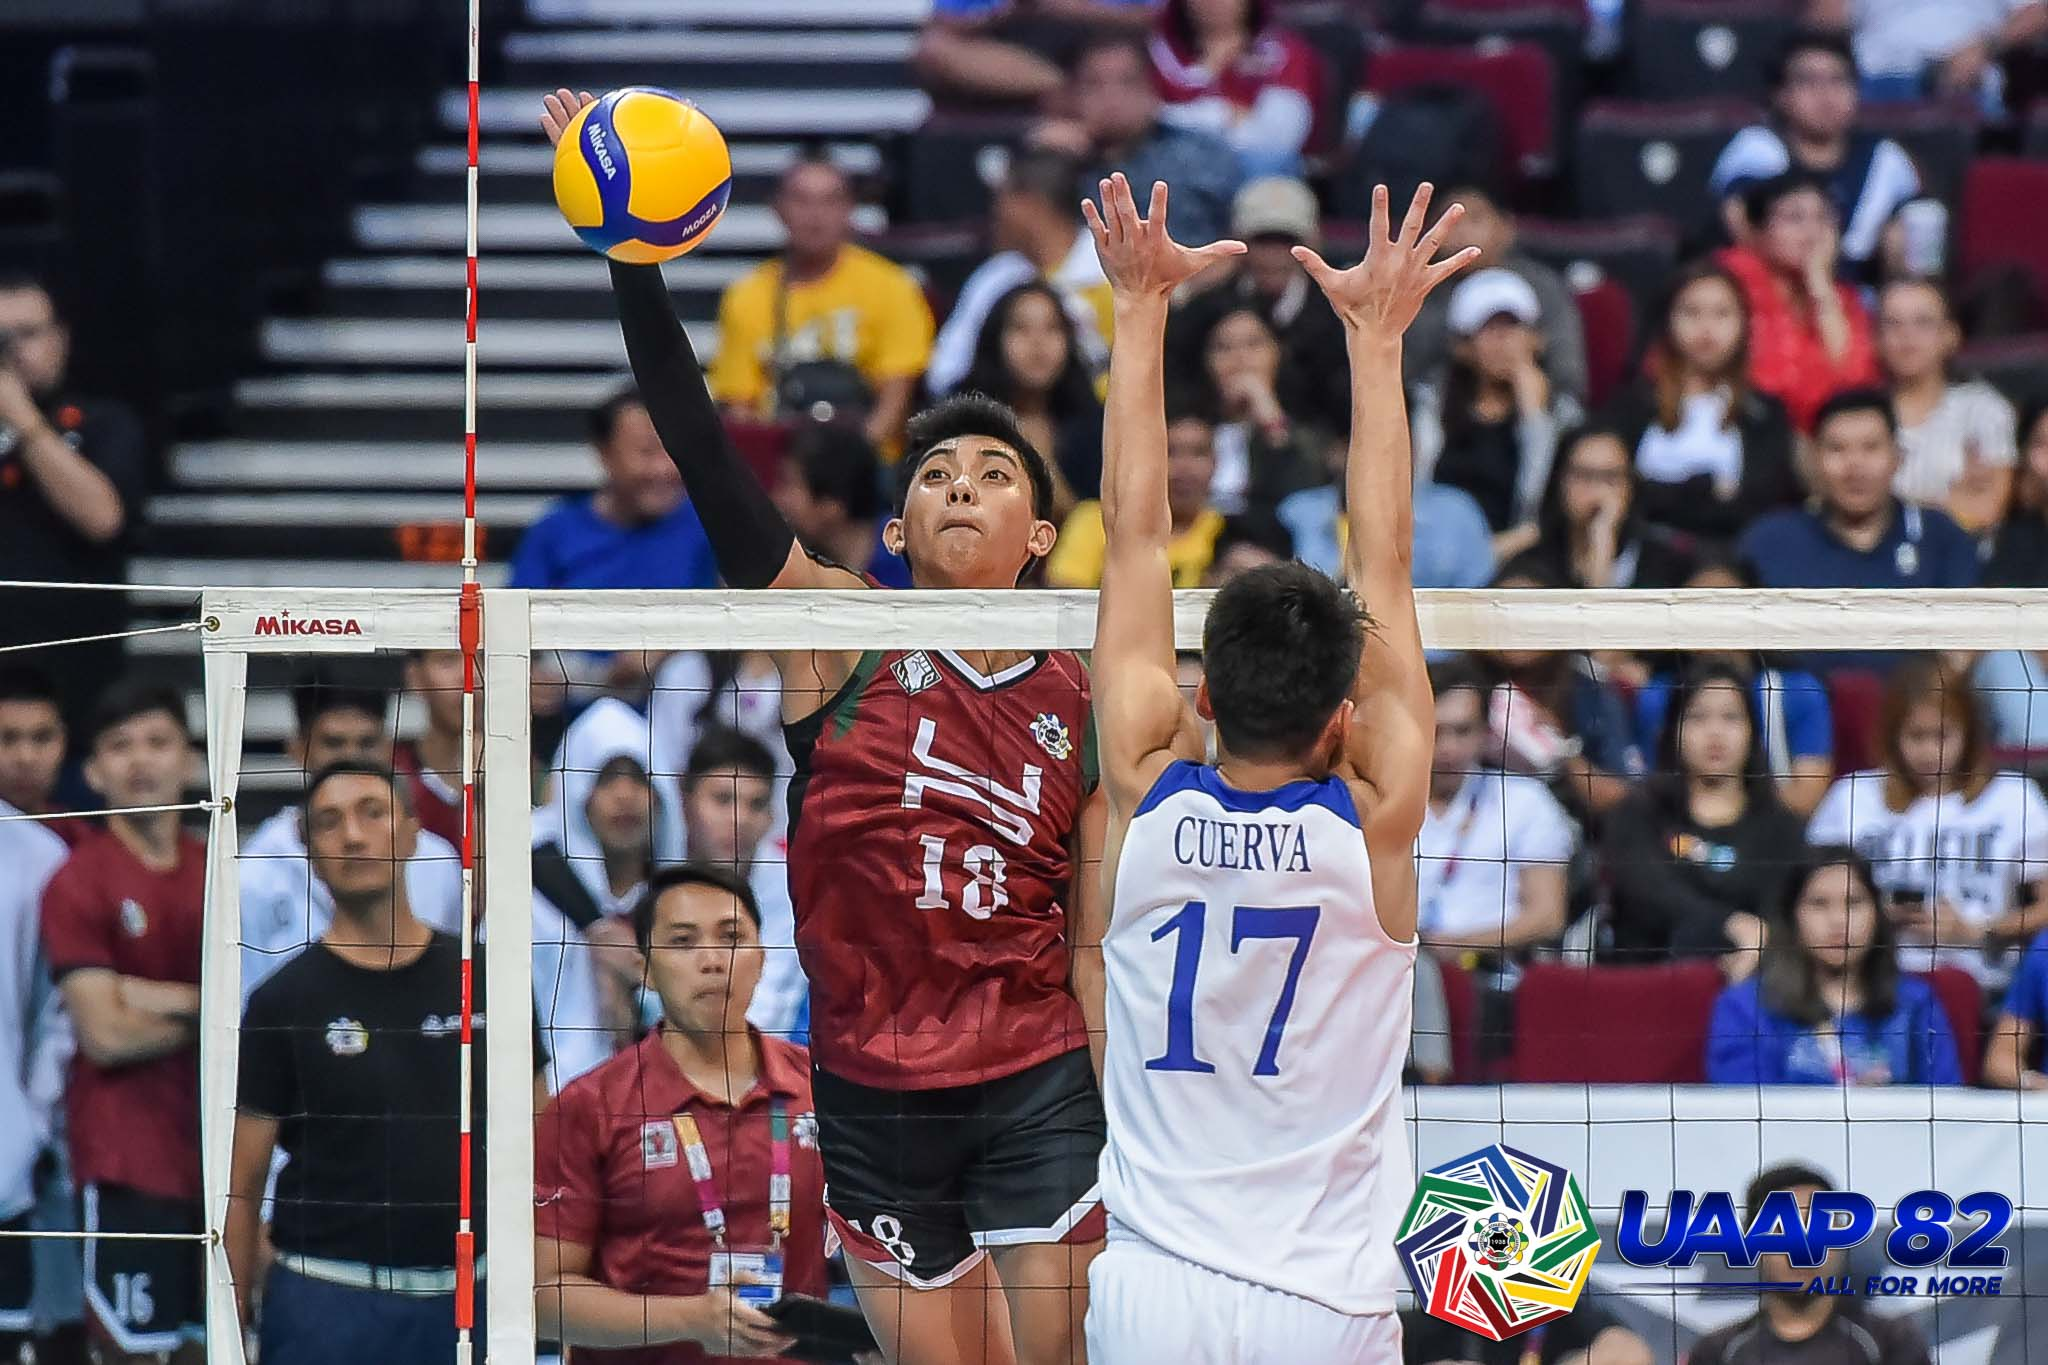 Gamban shines as UP surprises Ateneo in men's volleyball